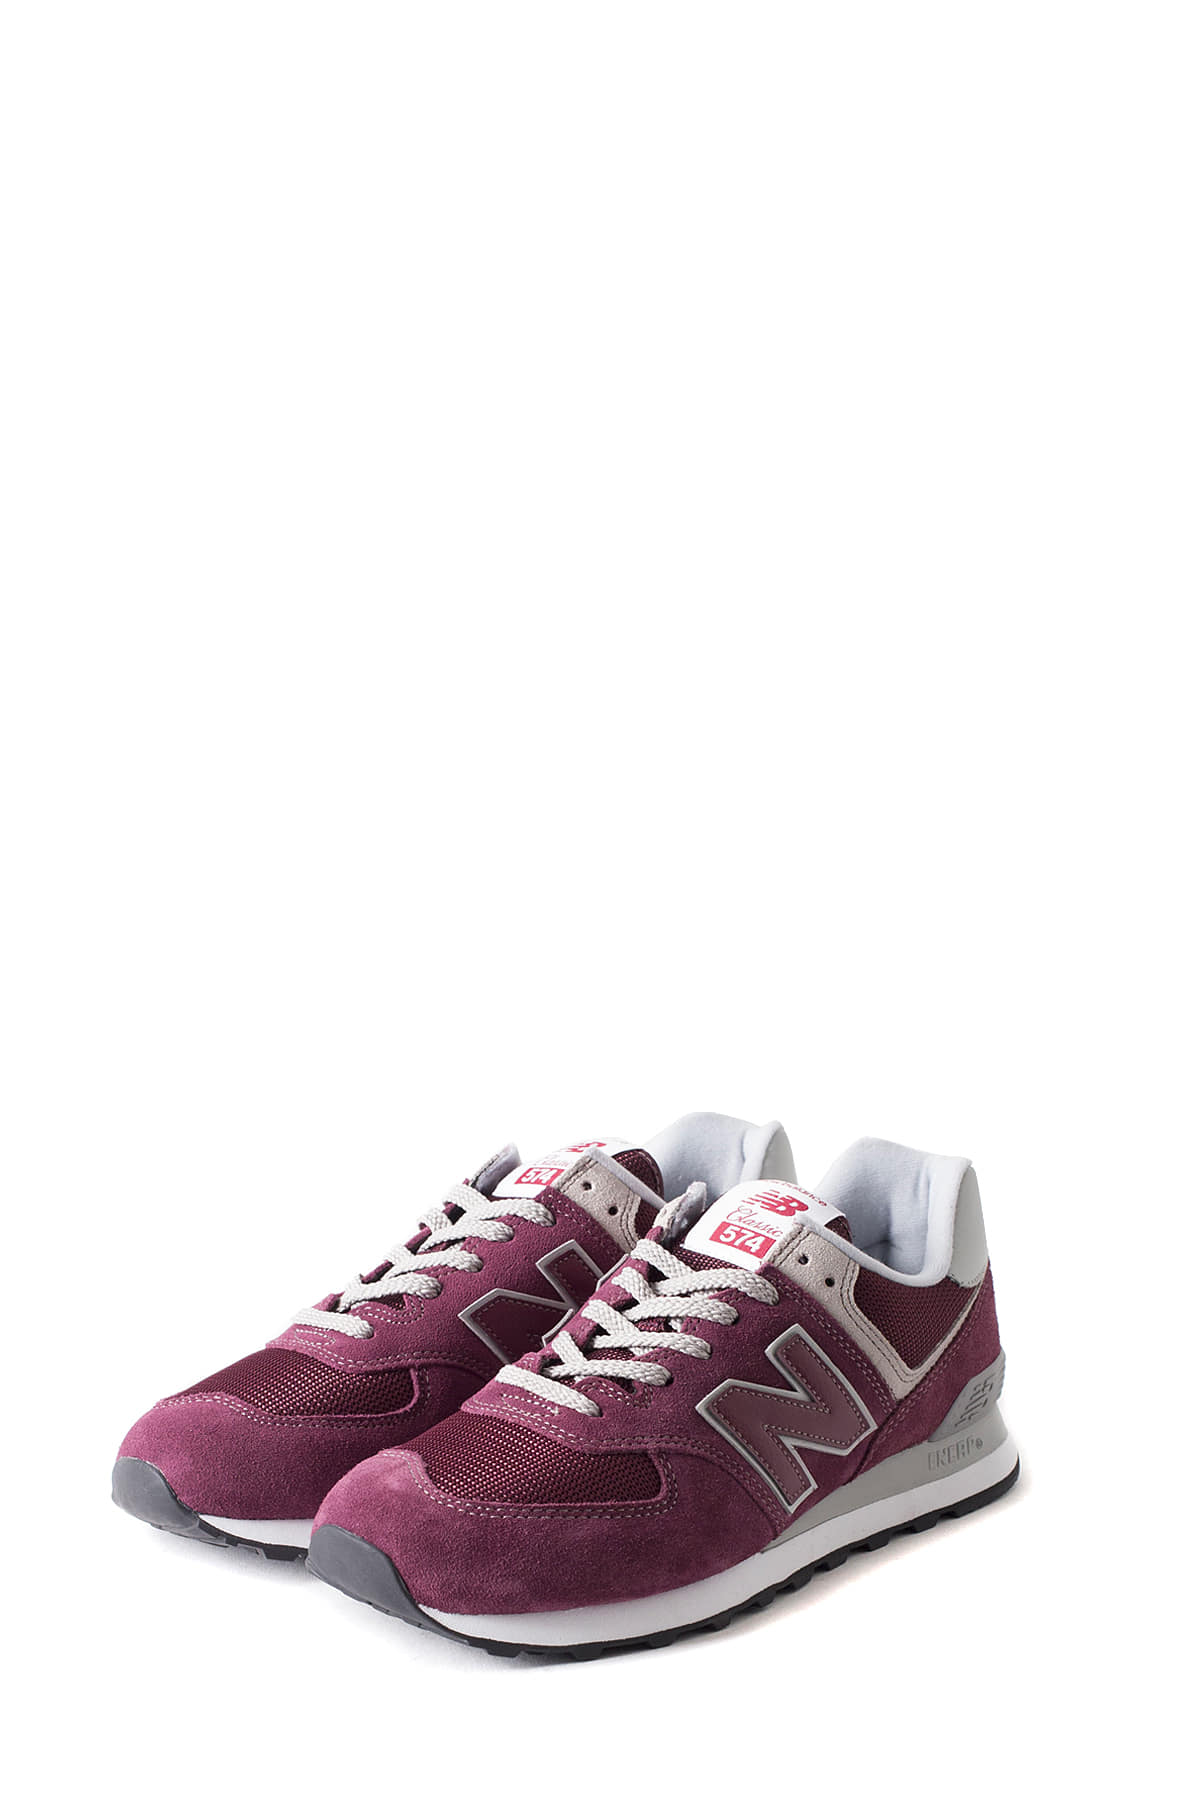 New Balance : ML574 (Burgundy)